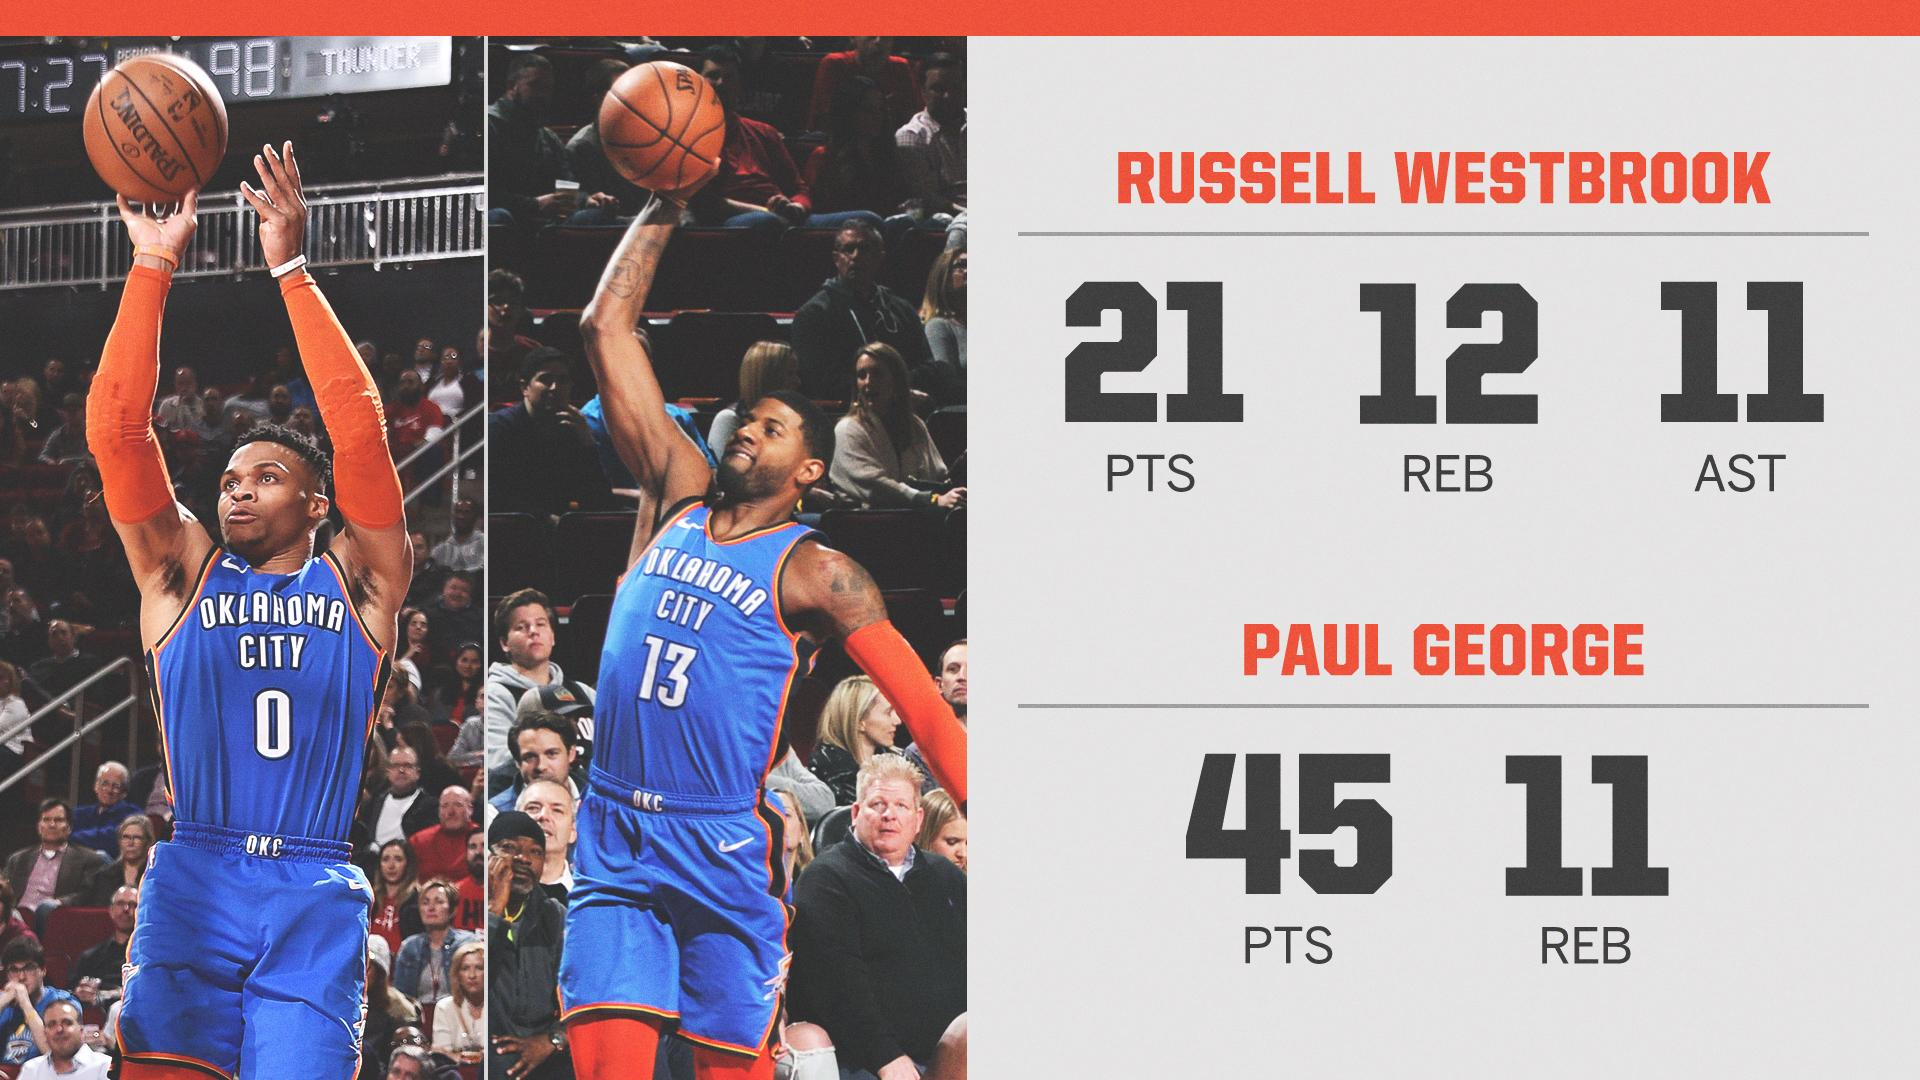 PG was on �� and Russ dropped his 9th-straight triple-double �� https://t.co/PwlAiH2Wvl